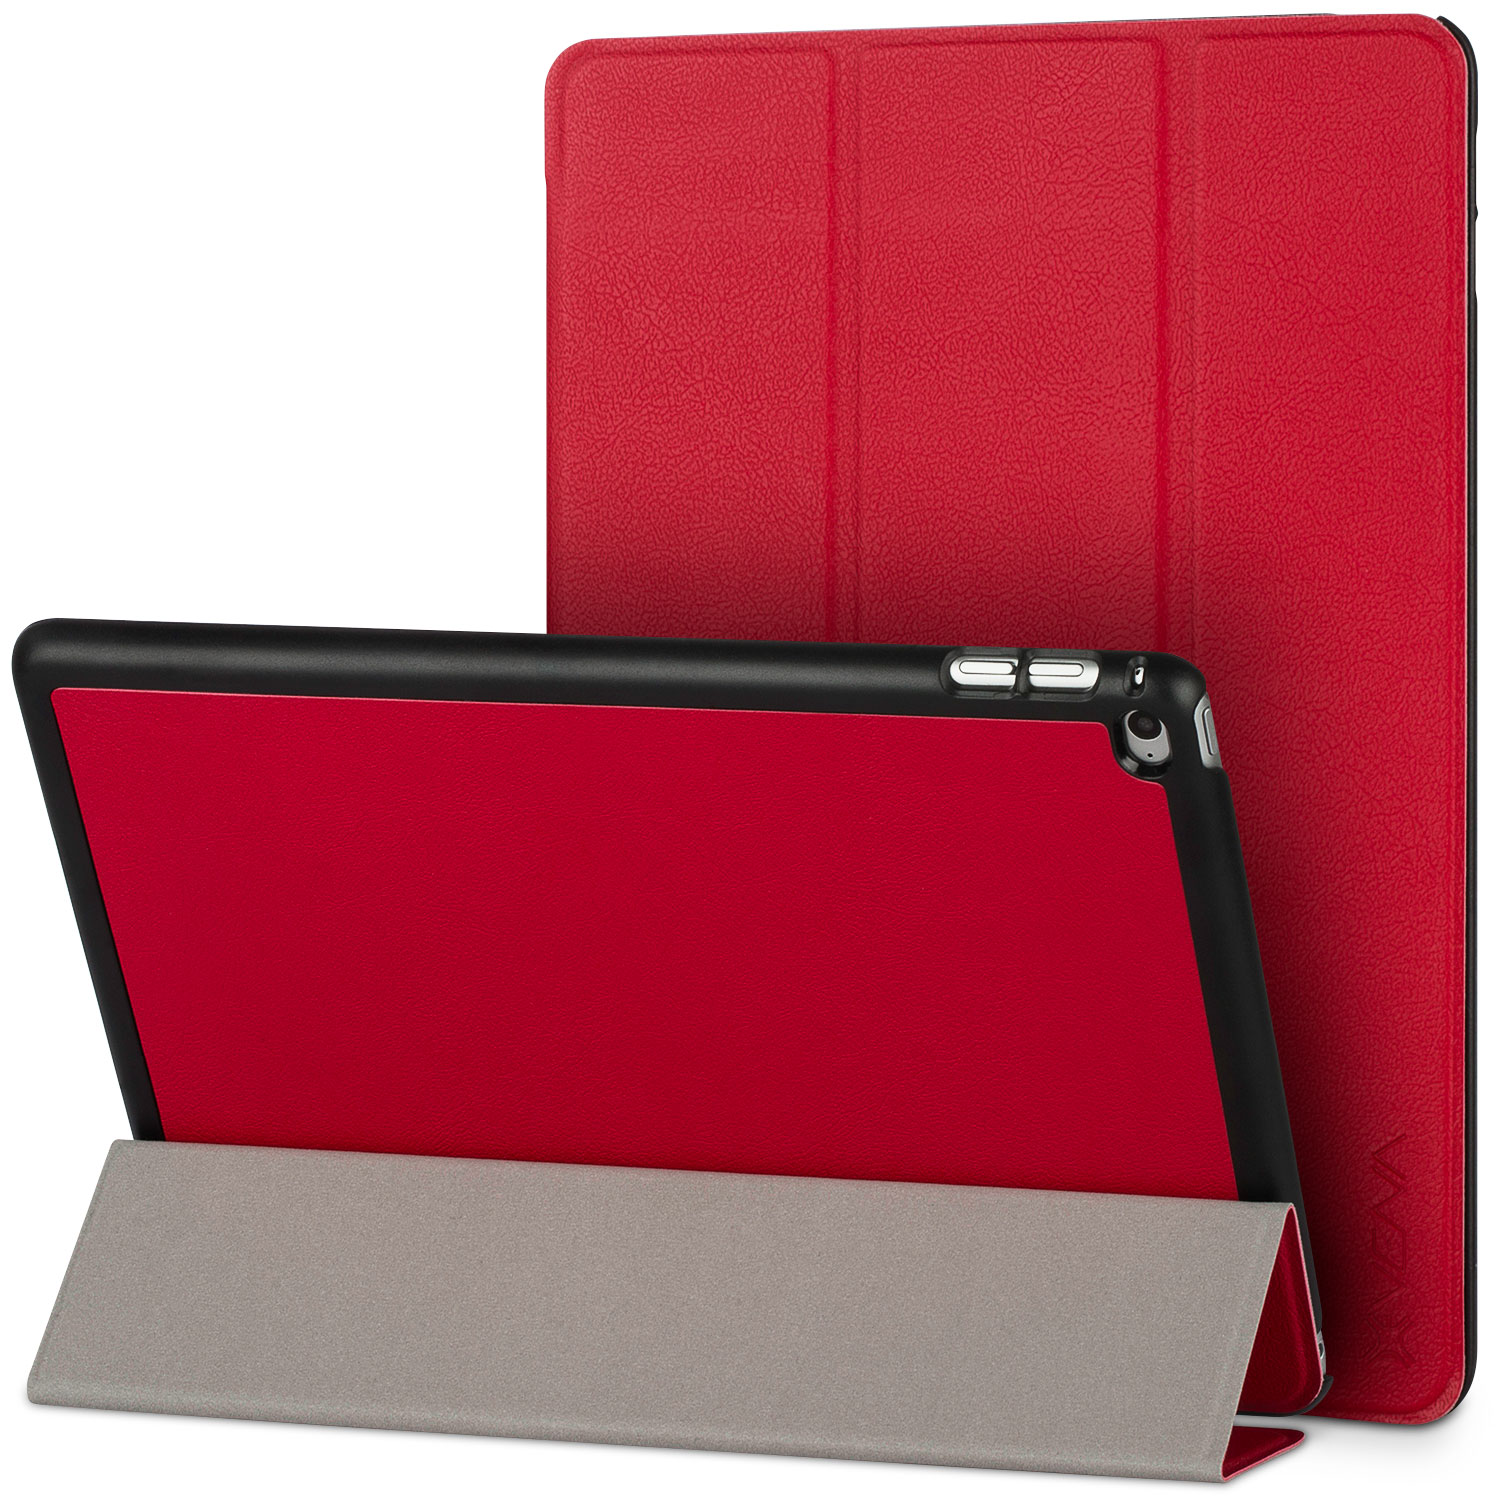 iPad Air 2 Smart Cover - VENA [vCover] Slim Leather Auto Sleep / Wake Hard Shell Case for Apple iPad Air 2 (2014) - Red